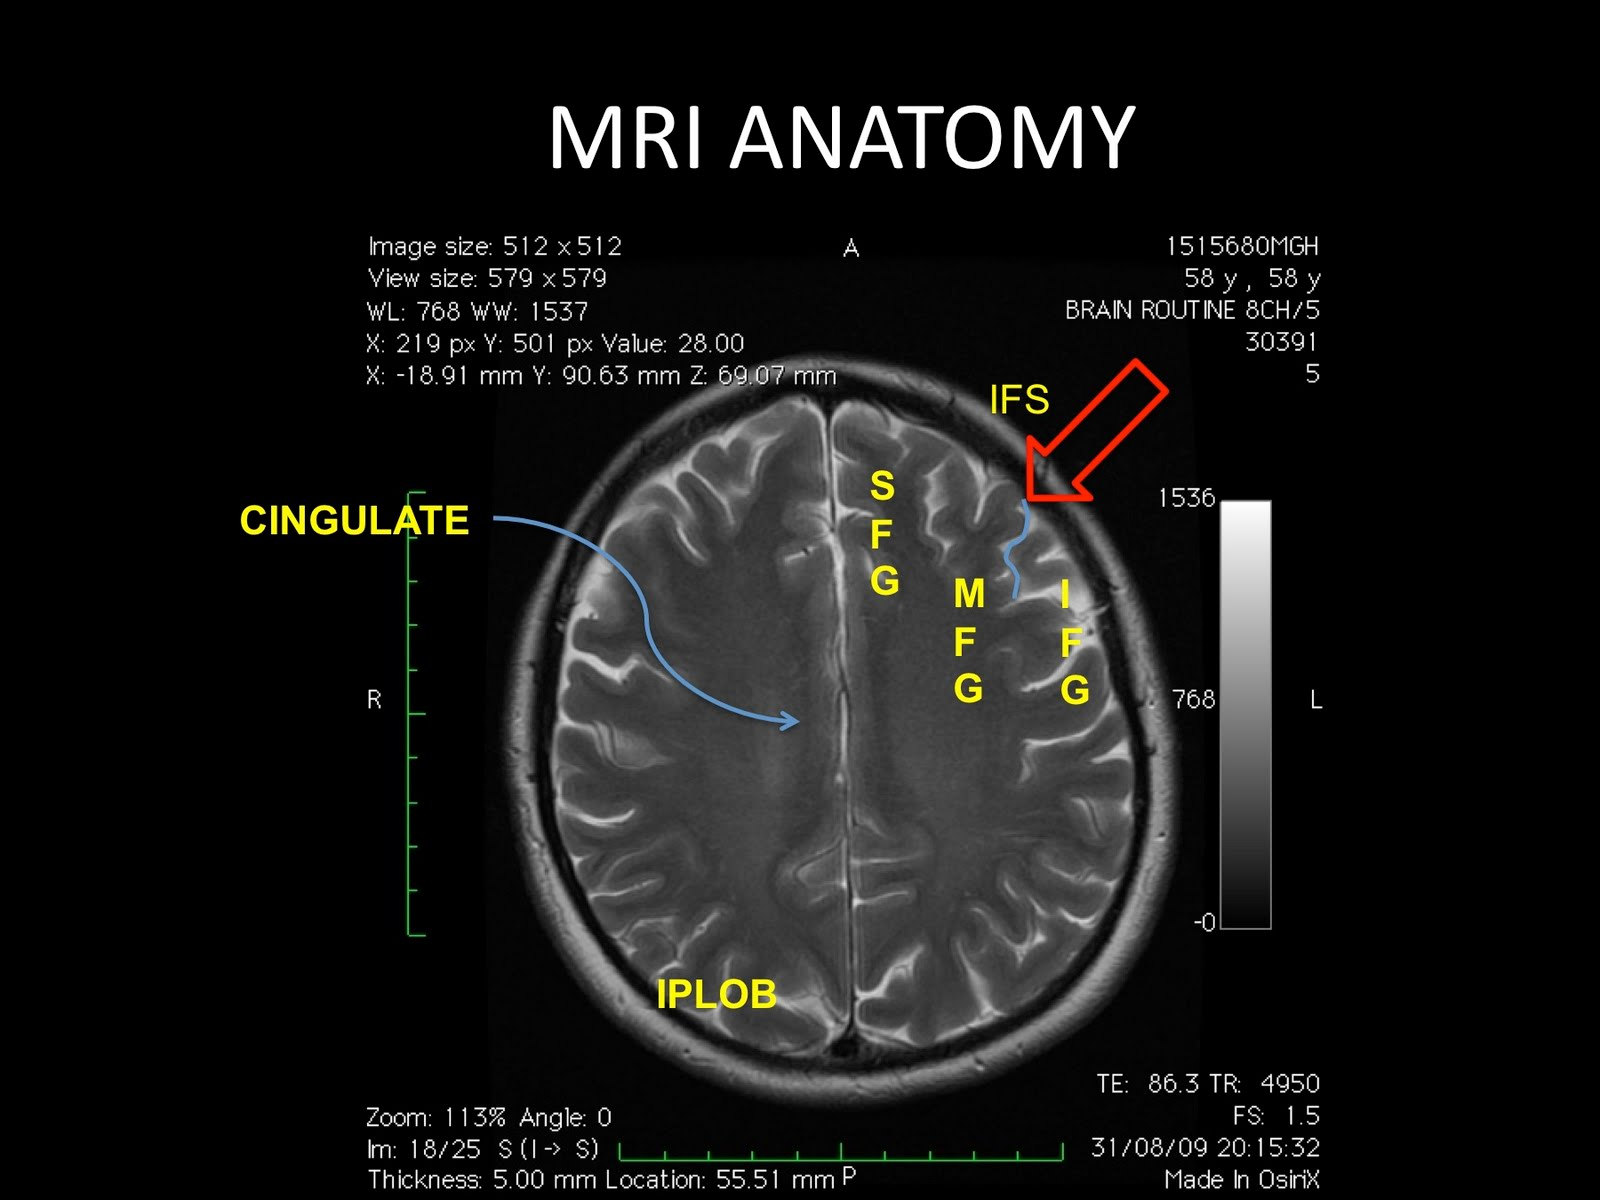 Centrum semiovale mri anatomy 7311024 - follow4more.info